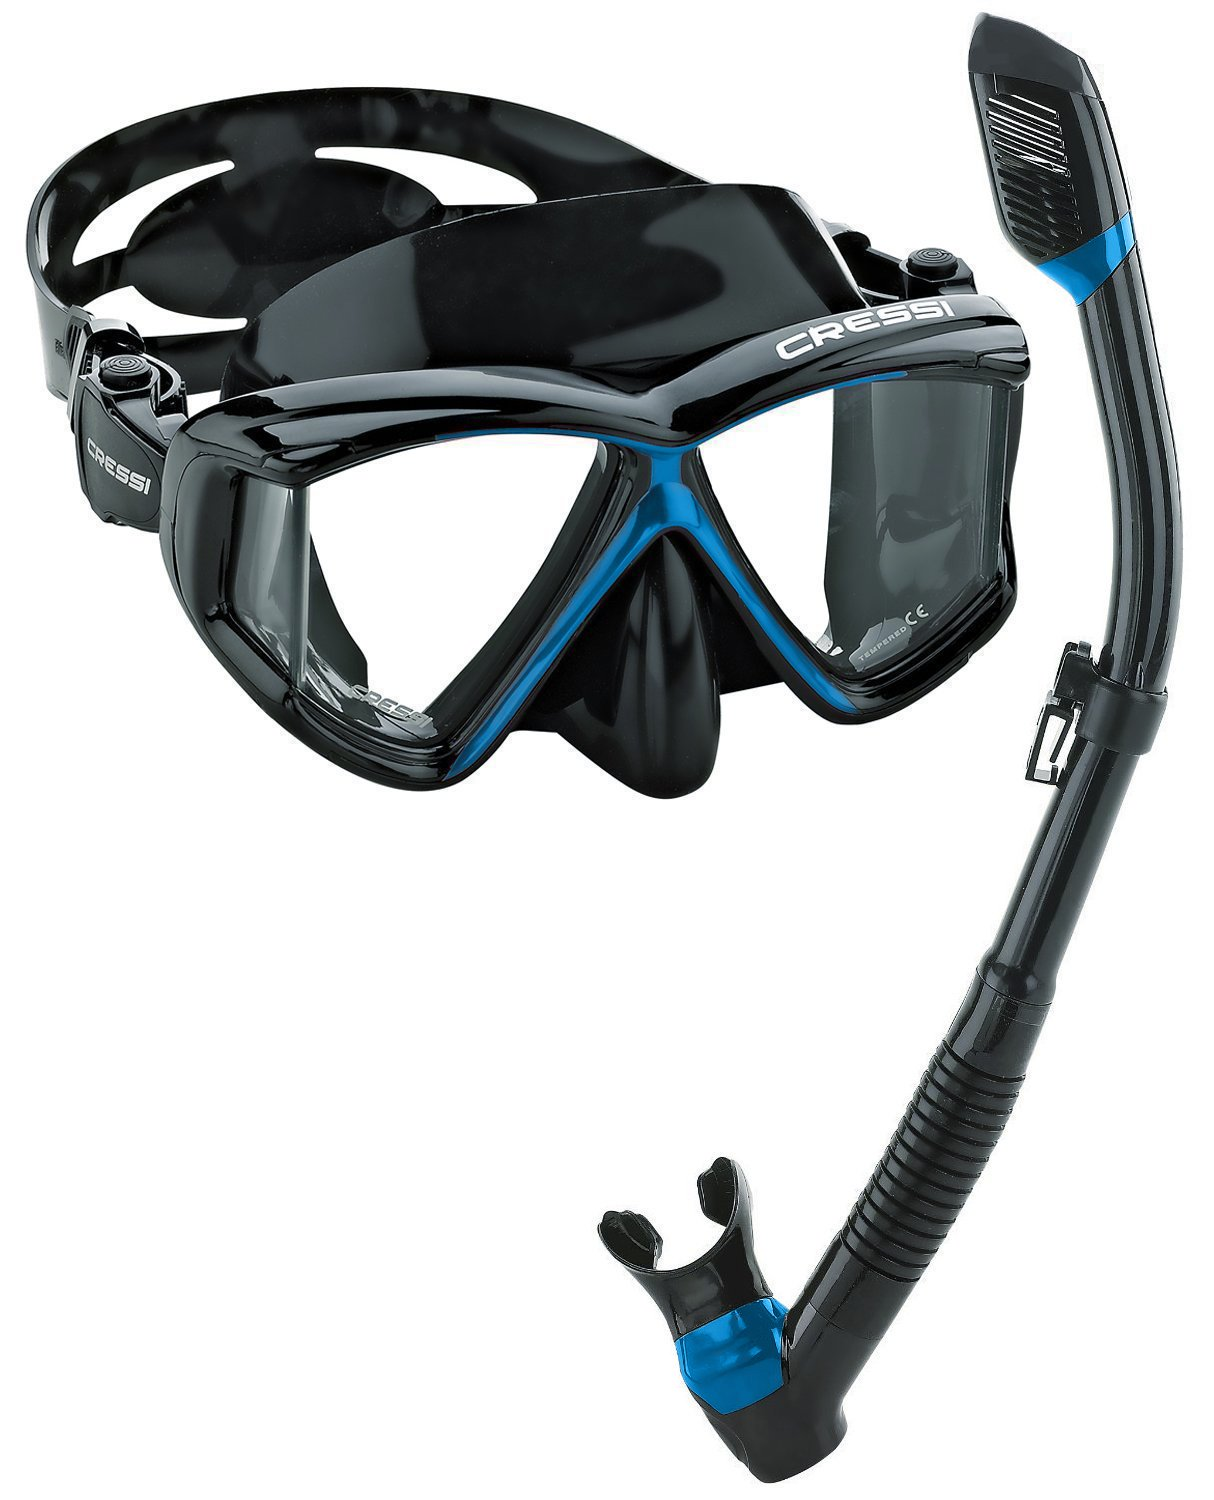 Cressi Panoramic Wide View Mask Dry Snorkel Set